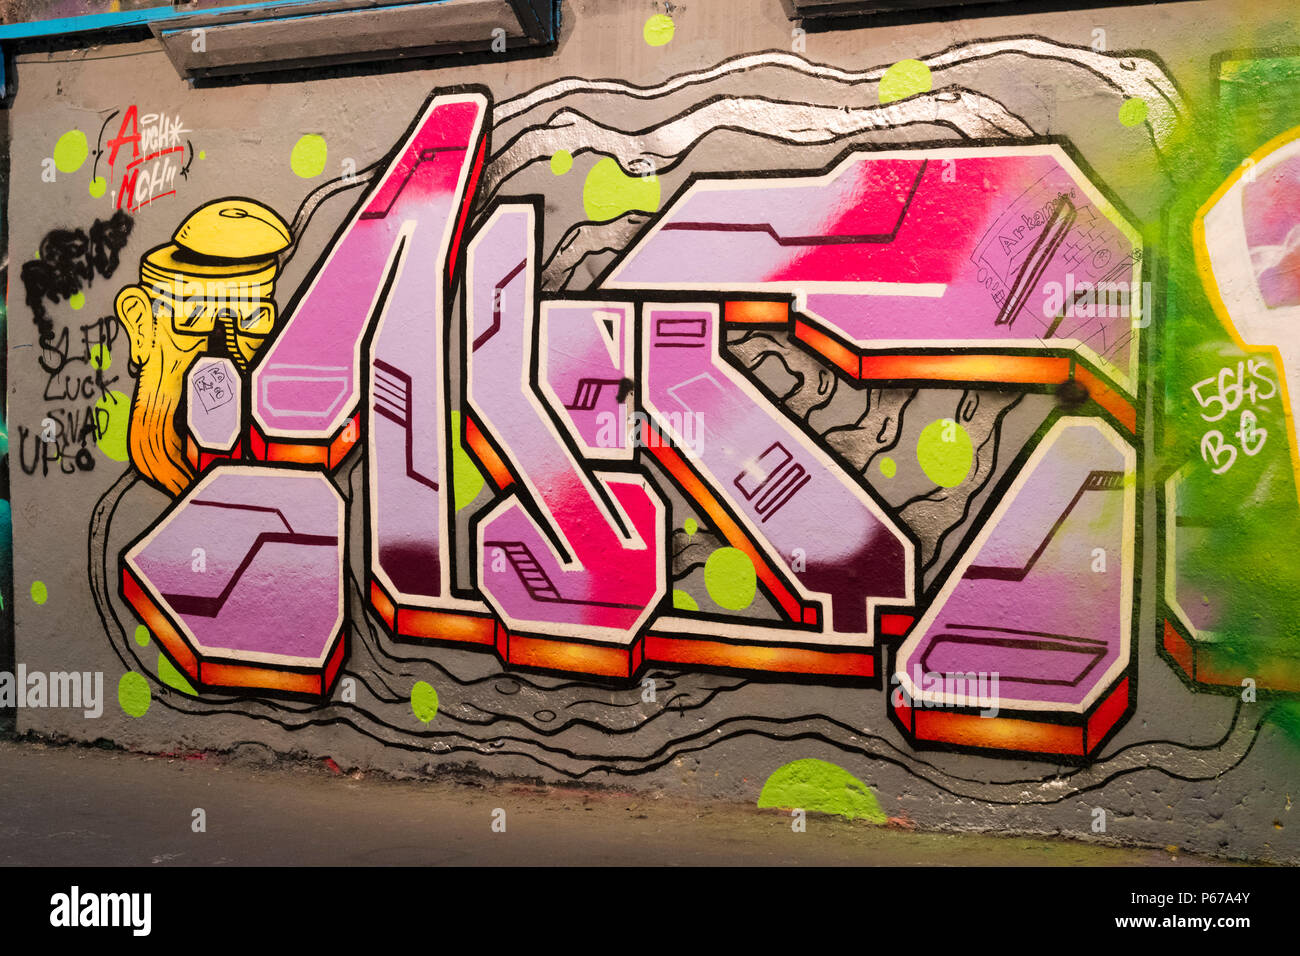 London Waterloo Leake Street Graffiti rosa roten Buchstaben script Wand gehsteig Bürgersteig detail Abstract Stockbild